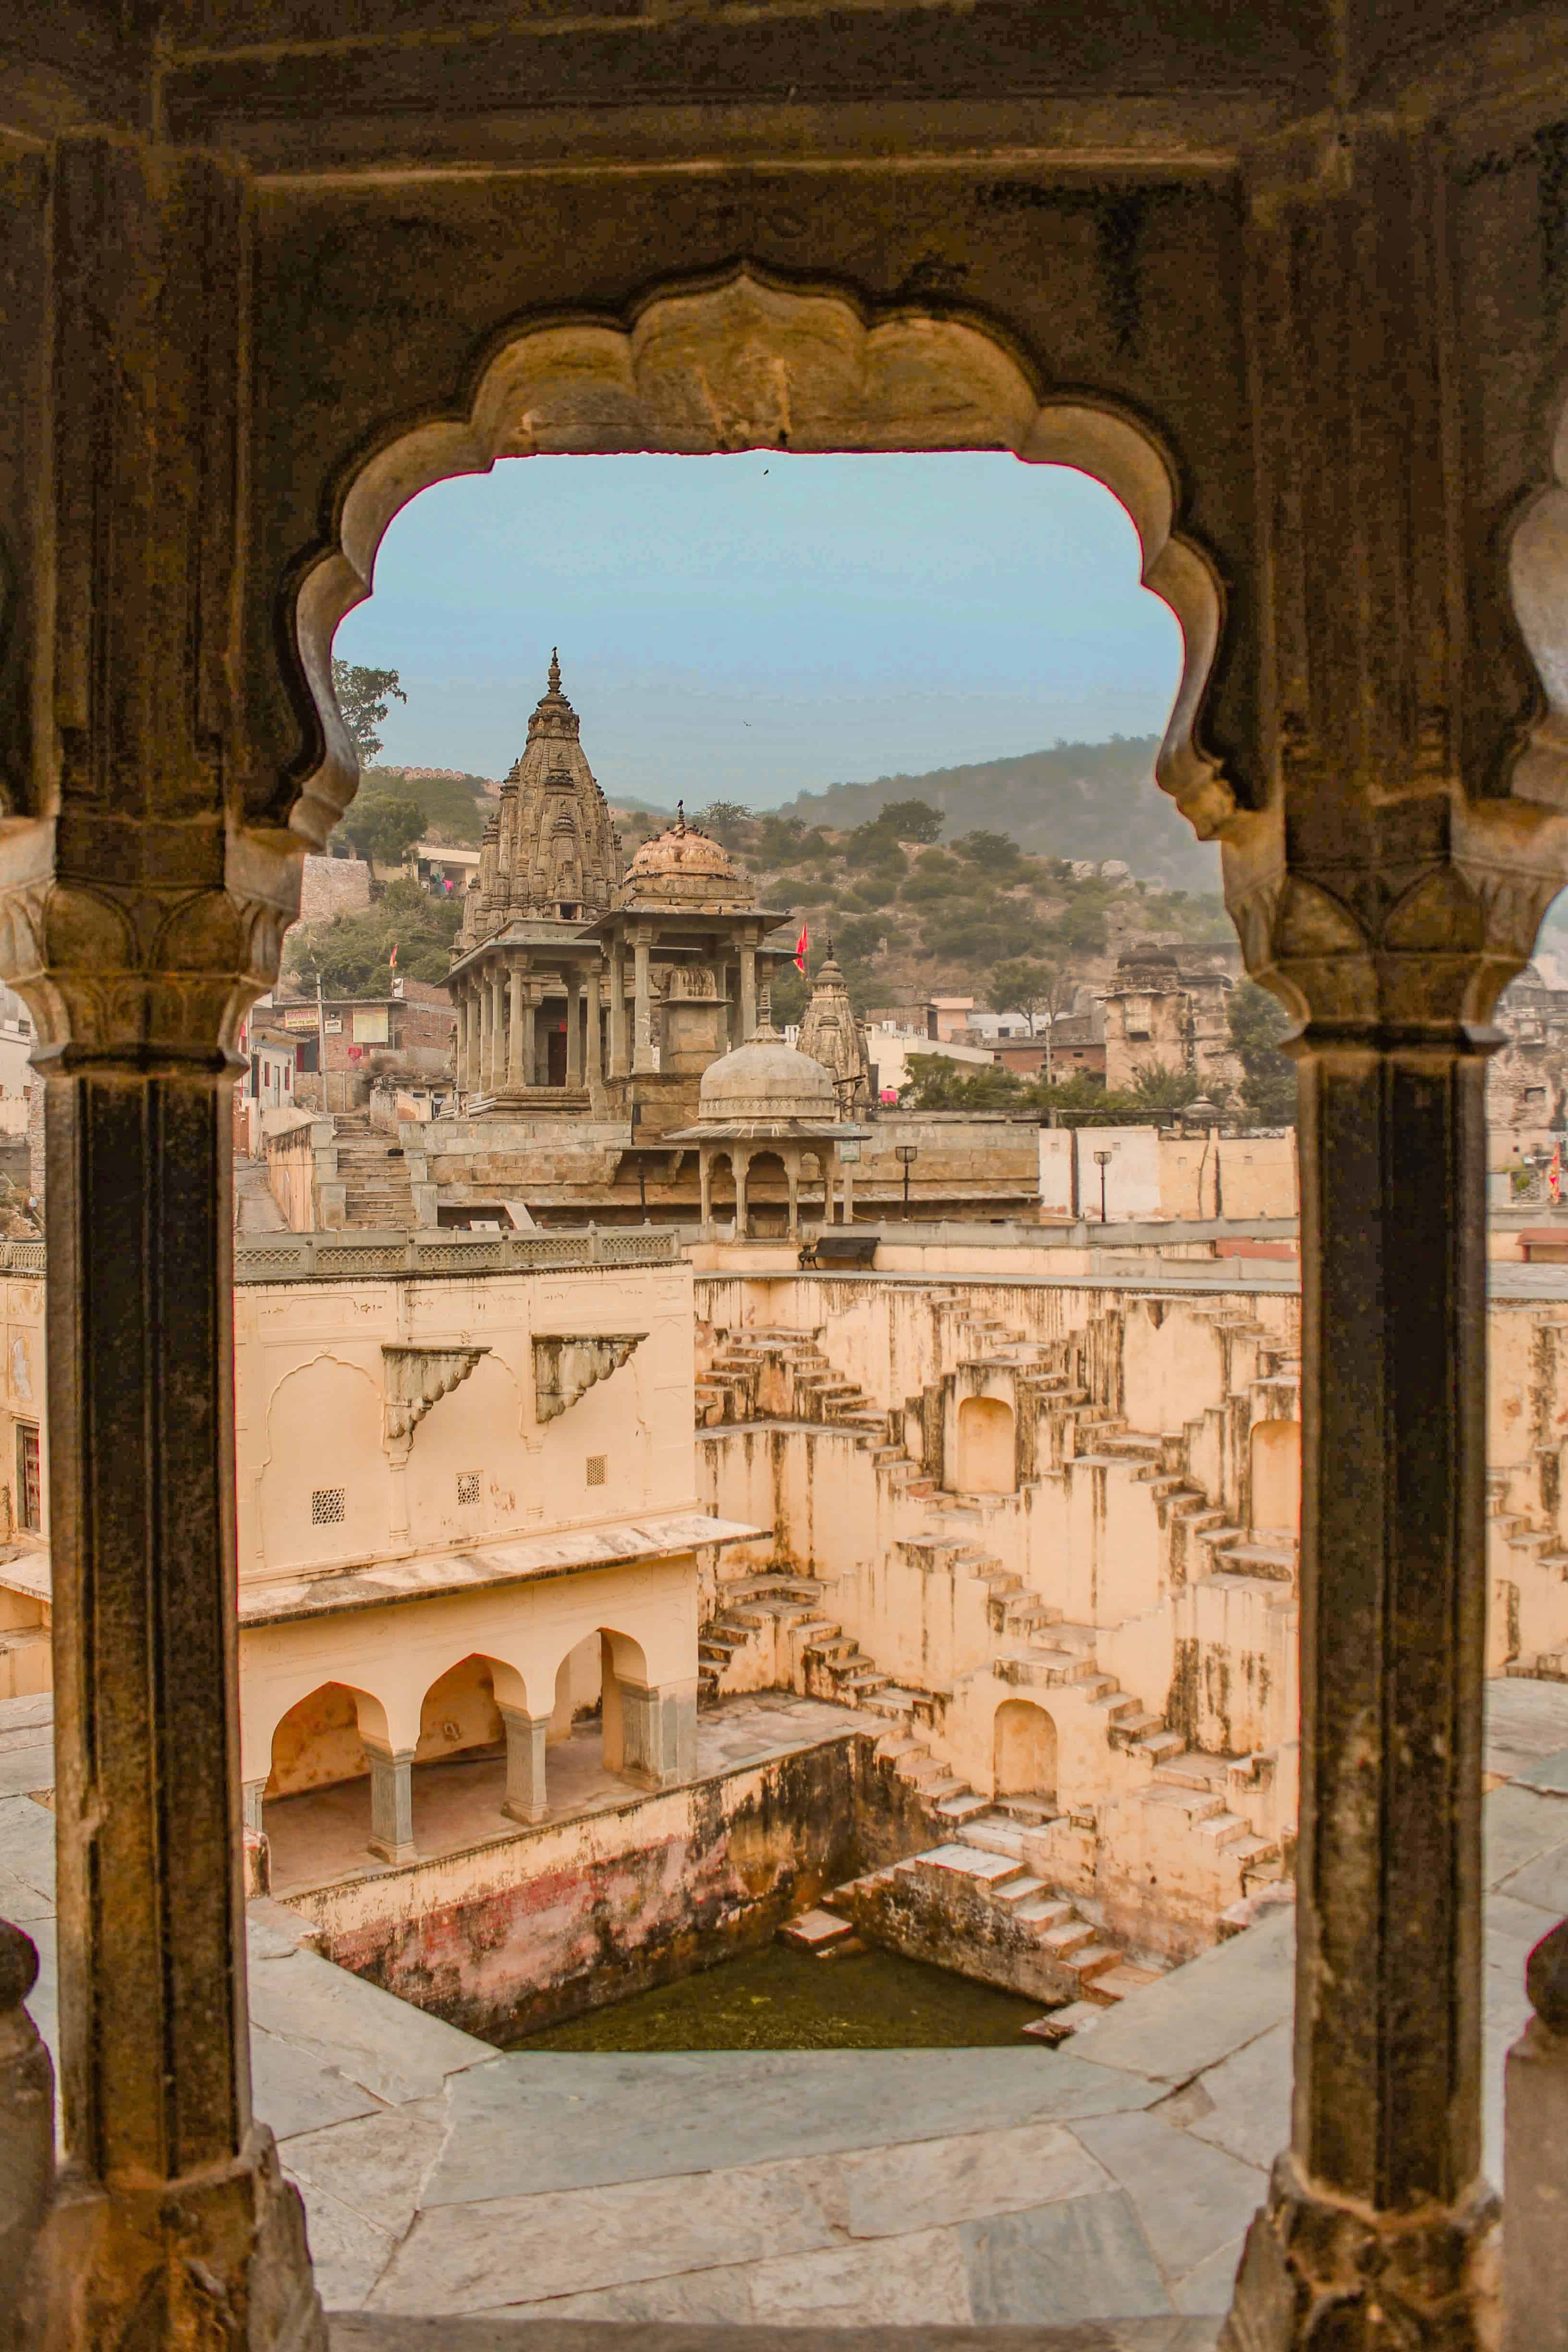 Panna Meena ka Kund- one of the best offbeat places to visit in Jaipur